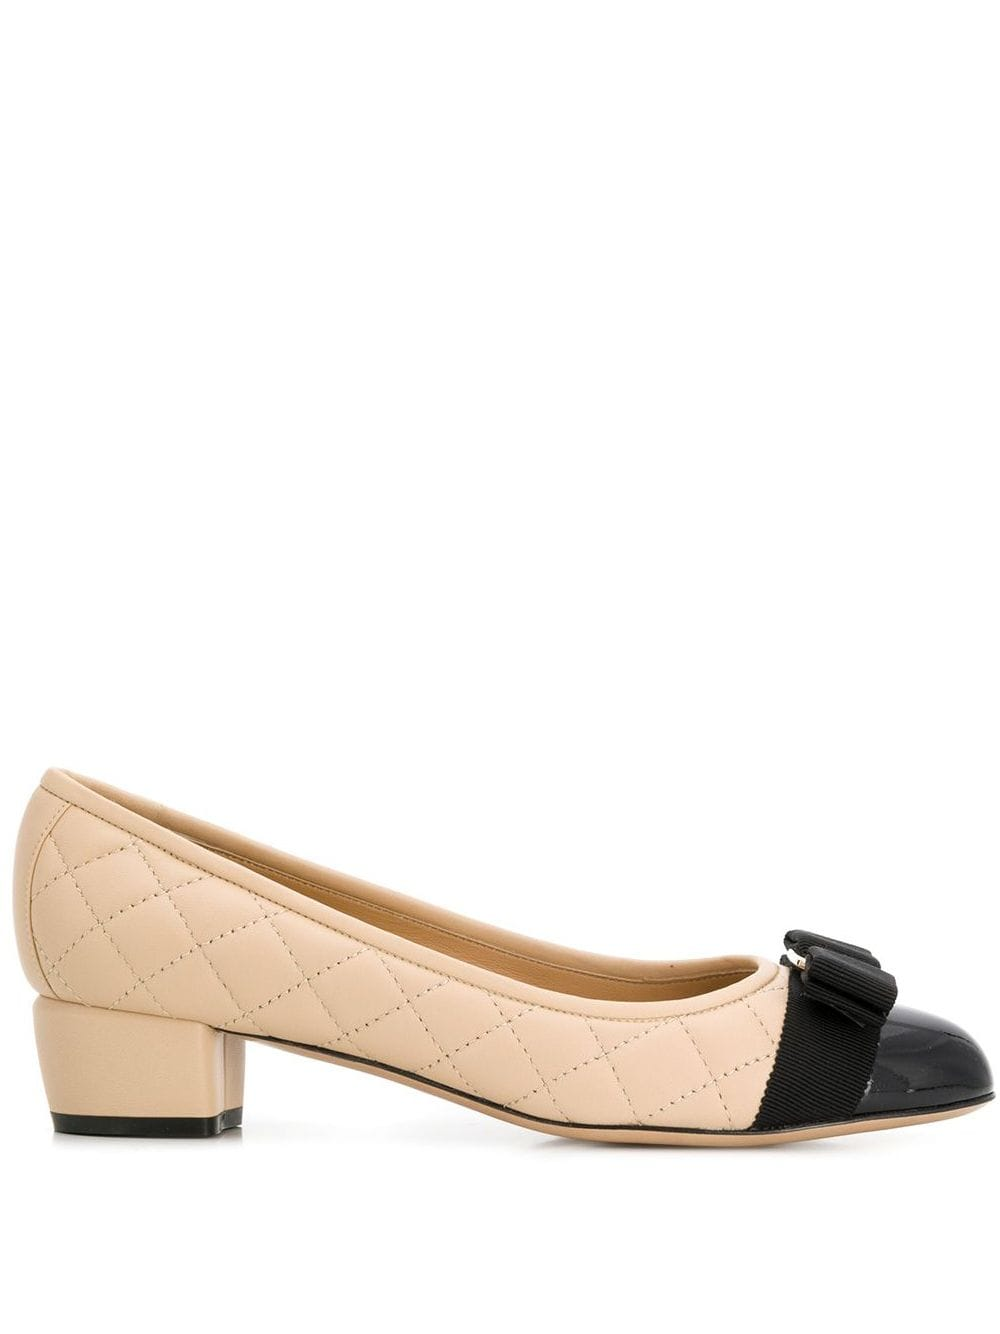 Vara Q* Leather Pumps